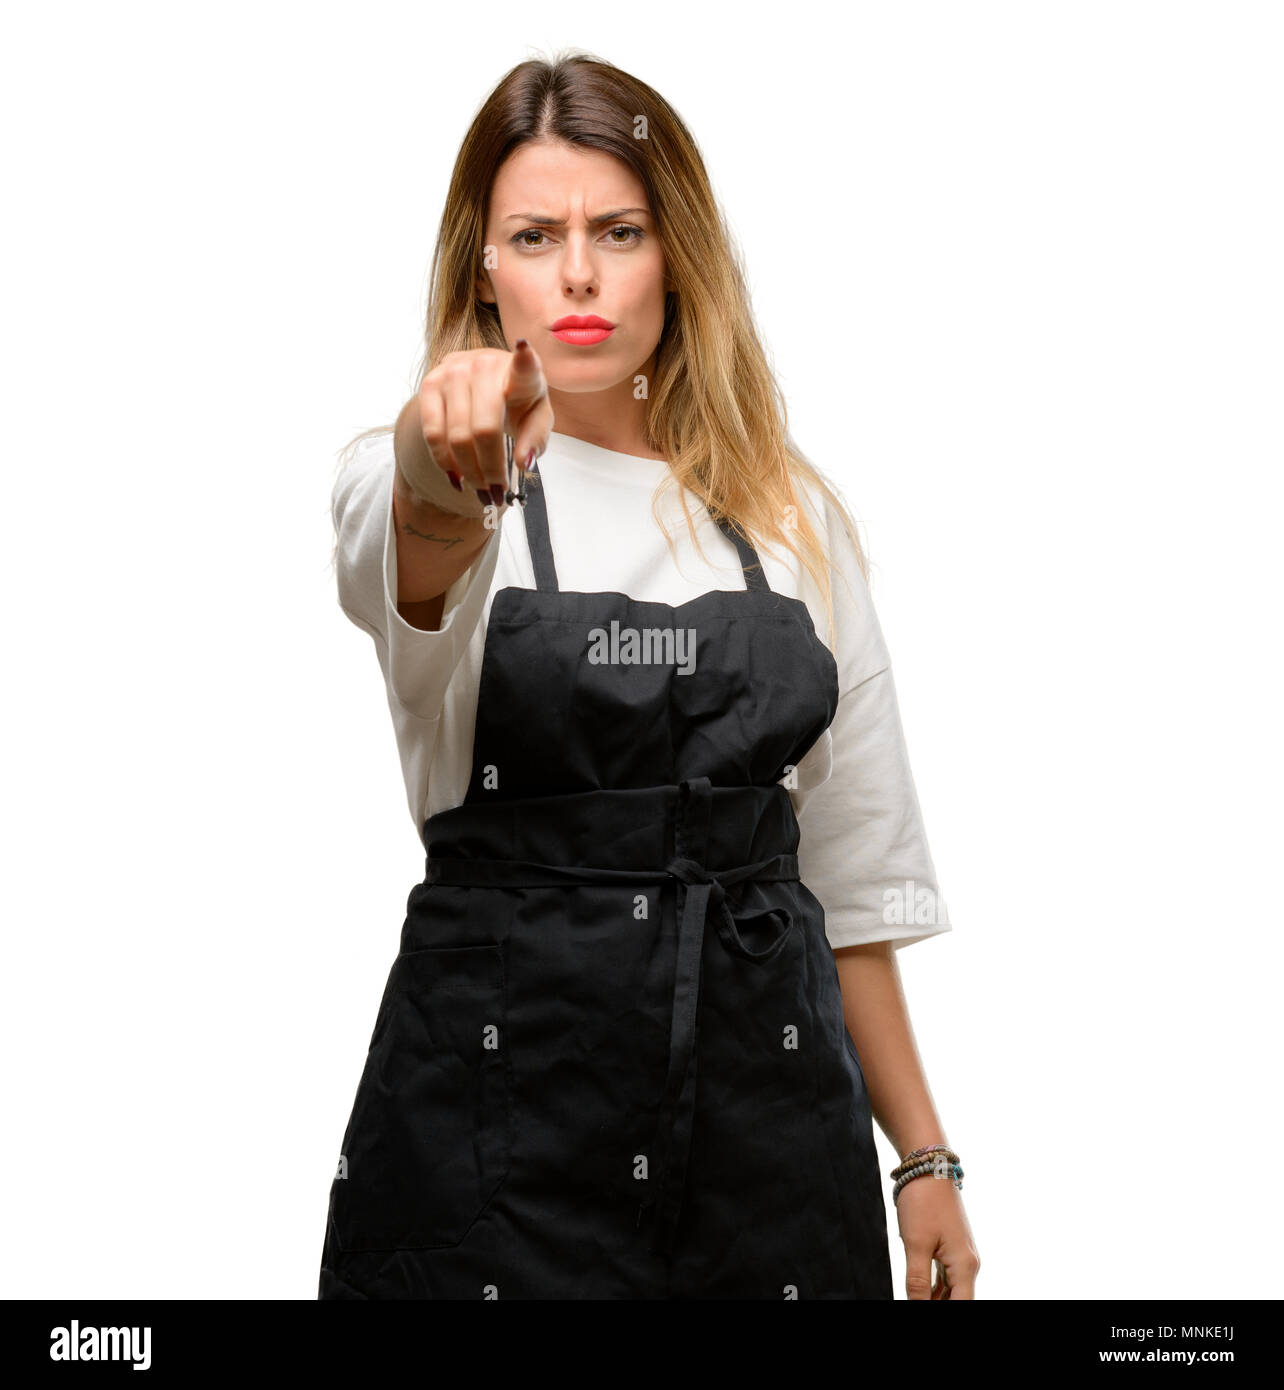 Shop owner woman wearing apron pointing to the front with finger - Stock Image